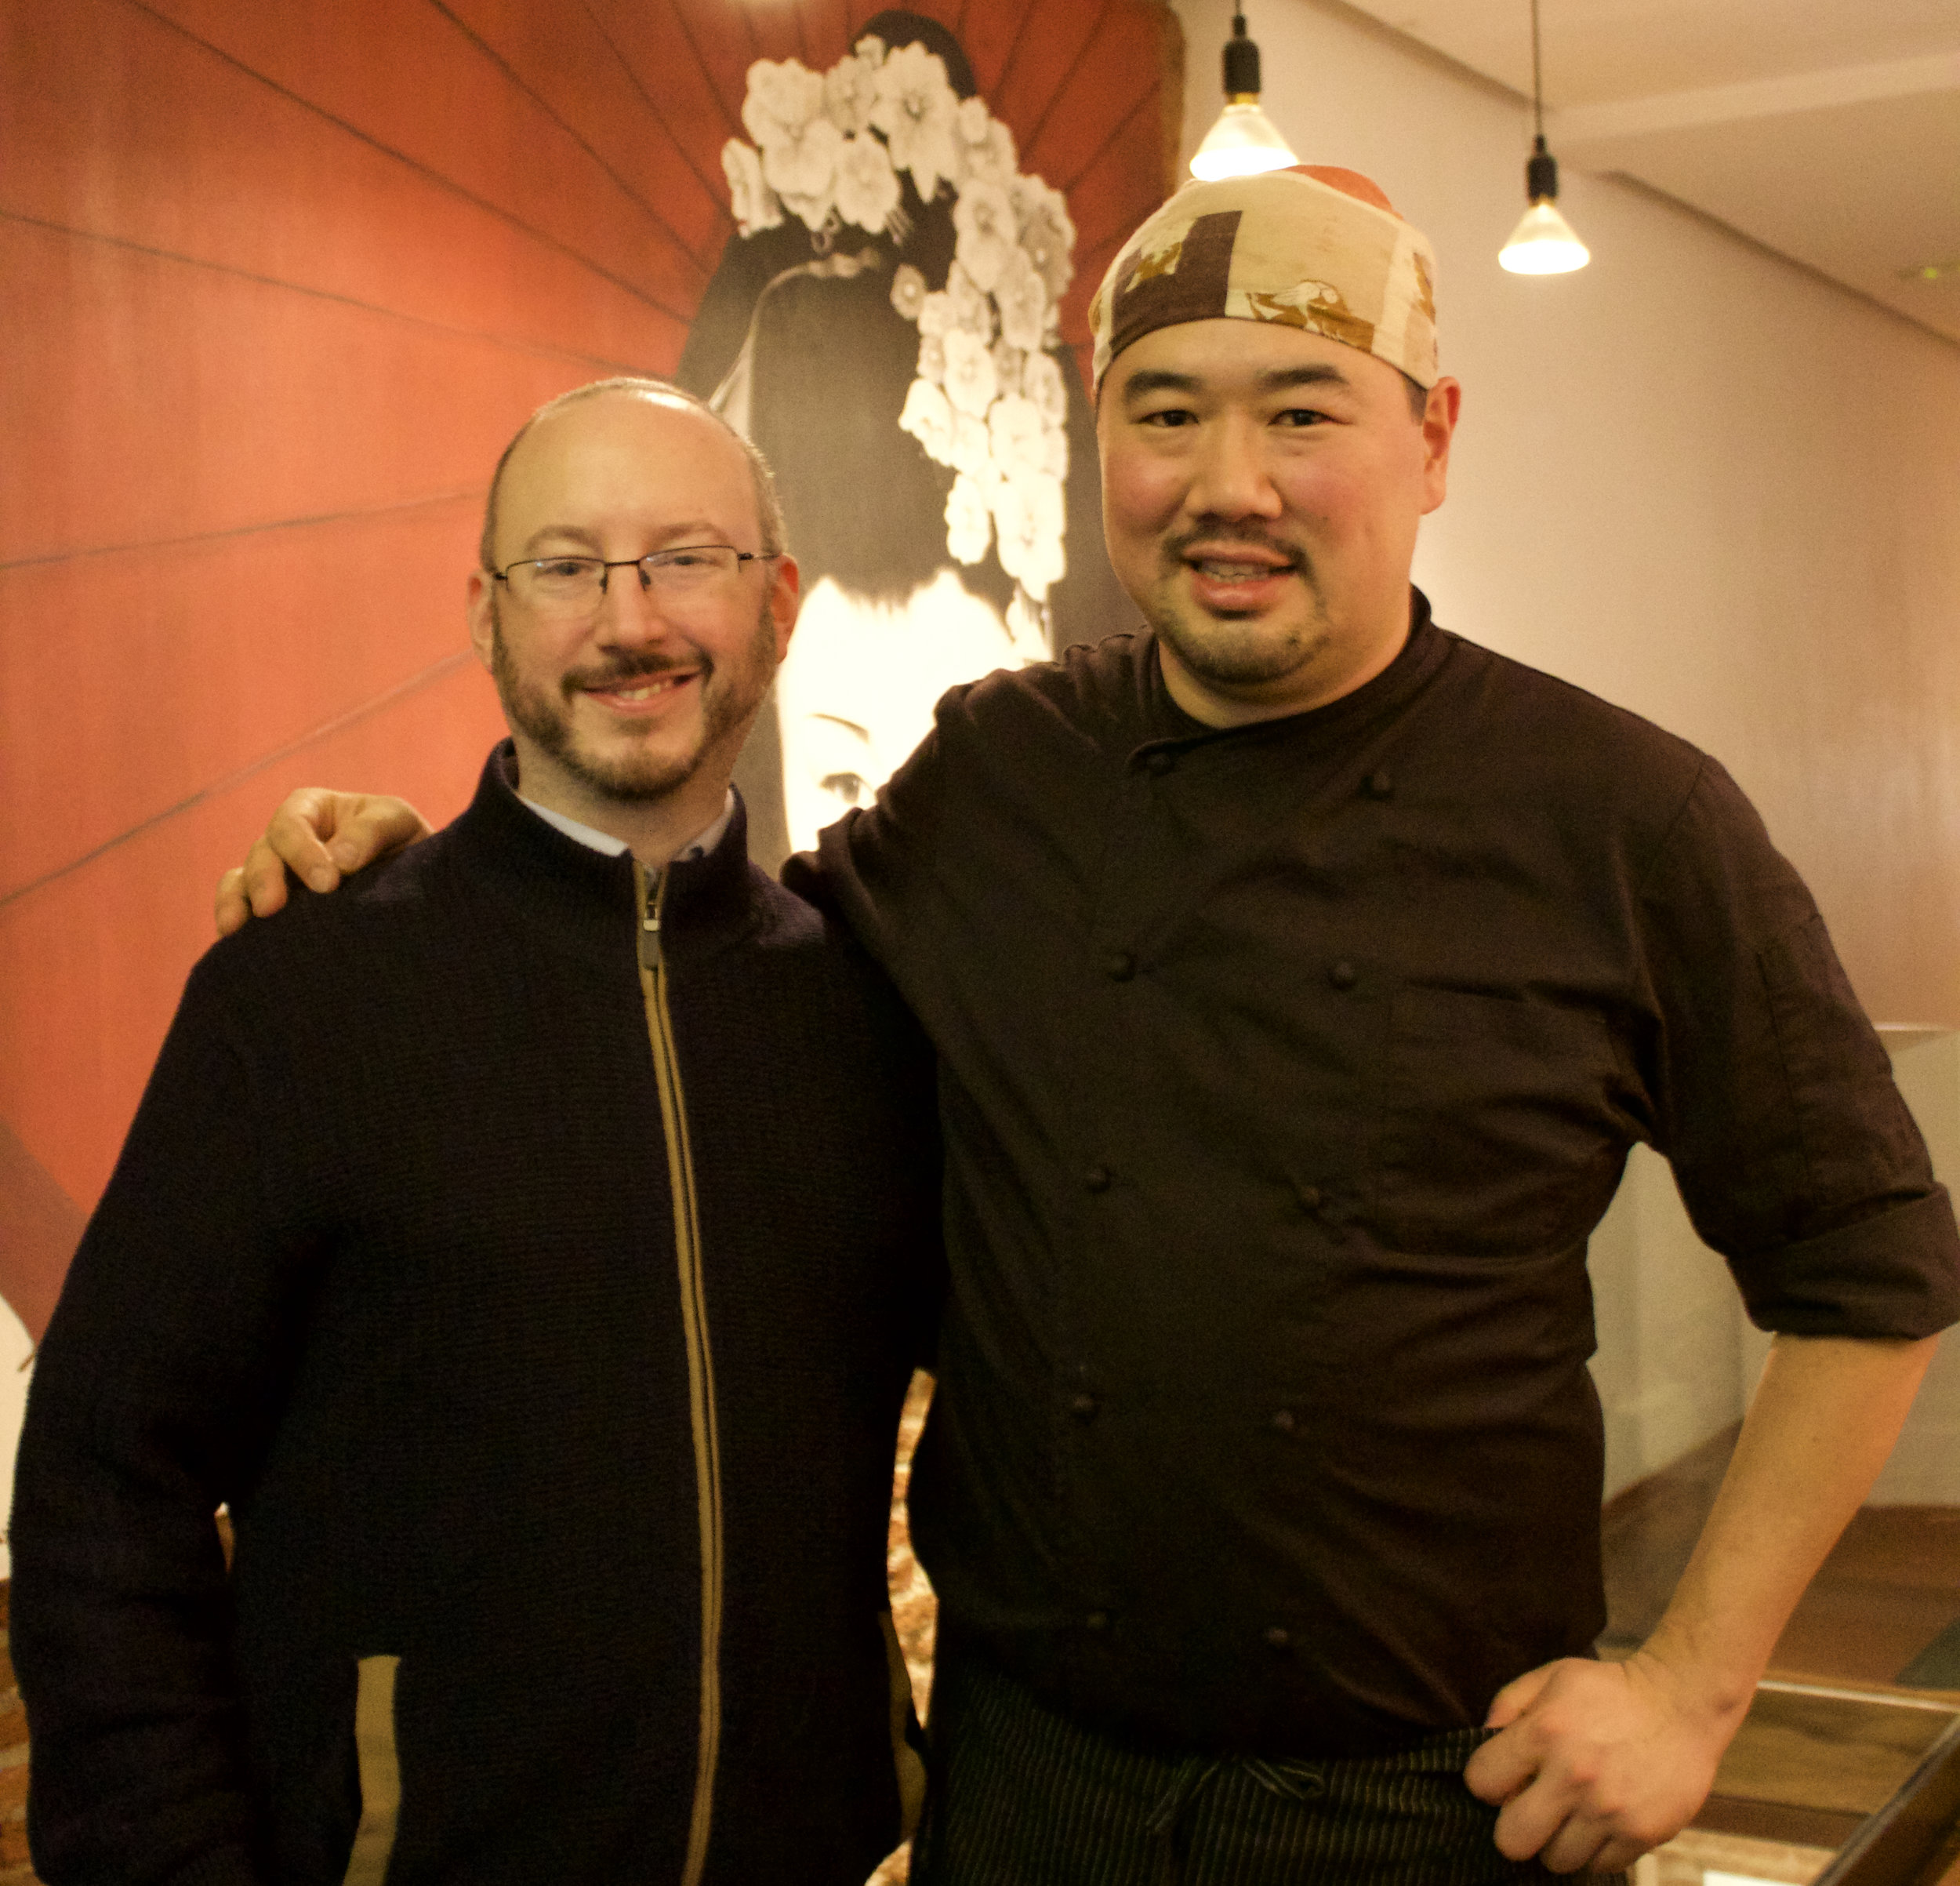 Myself and Gohei Kishi, our chef and entertainer for the evening